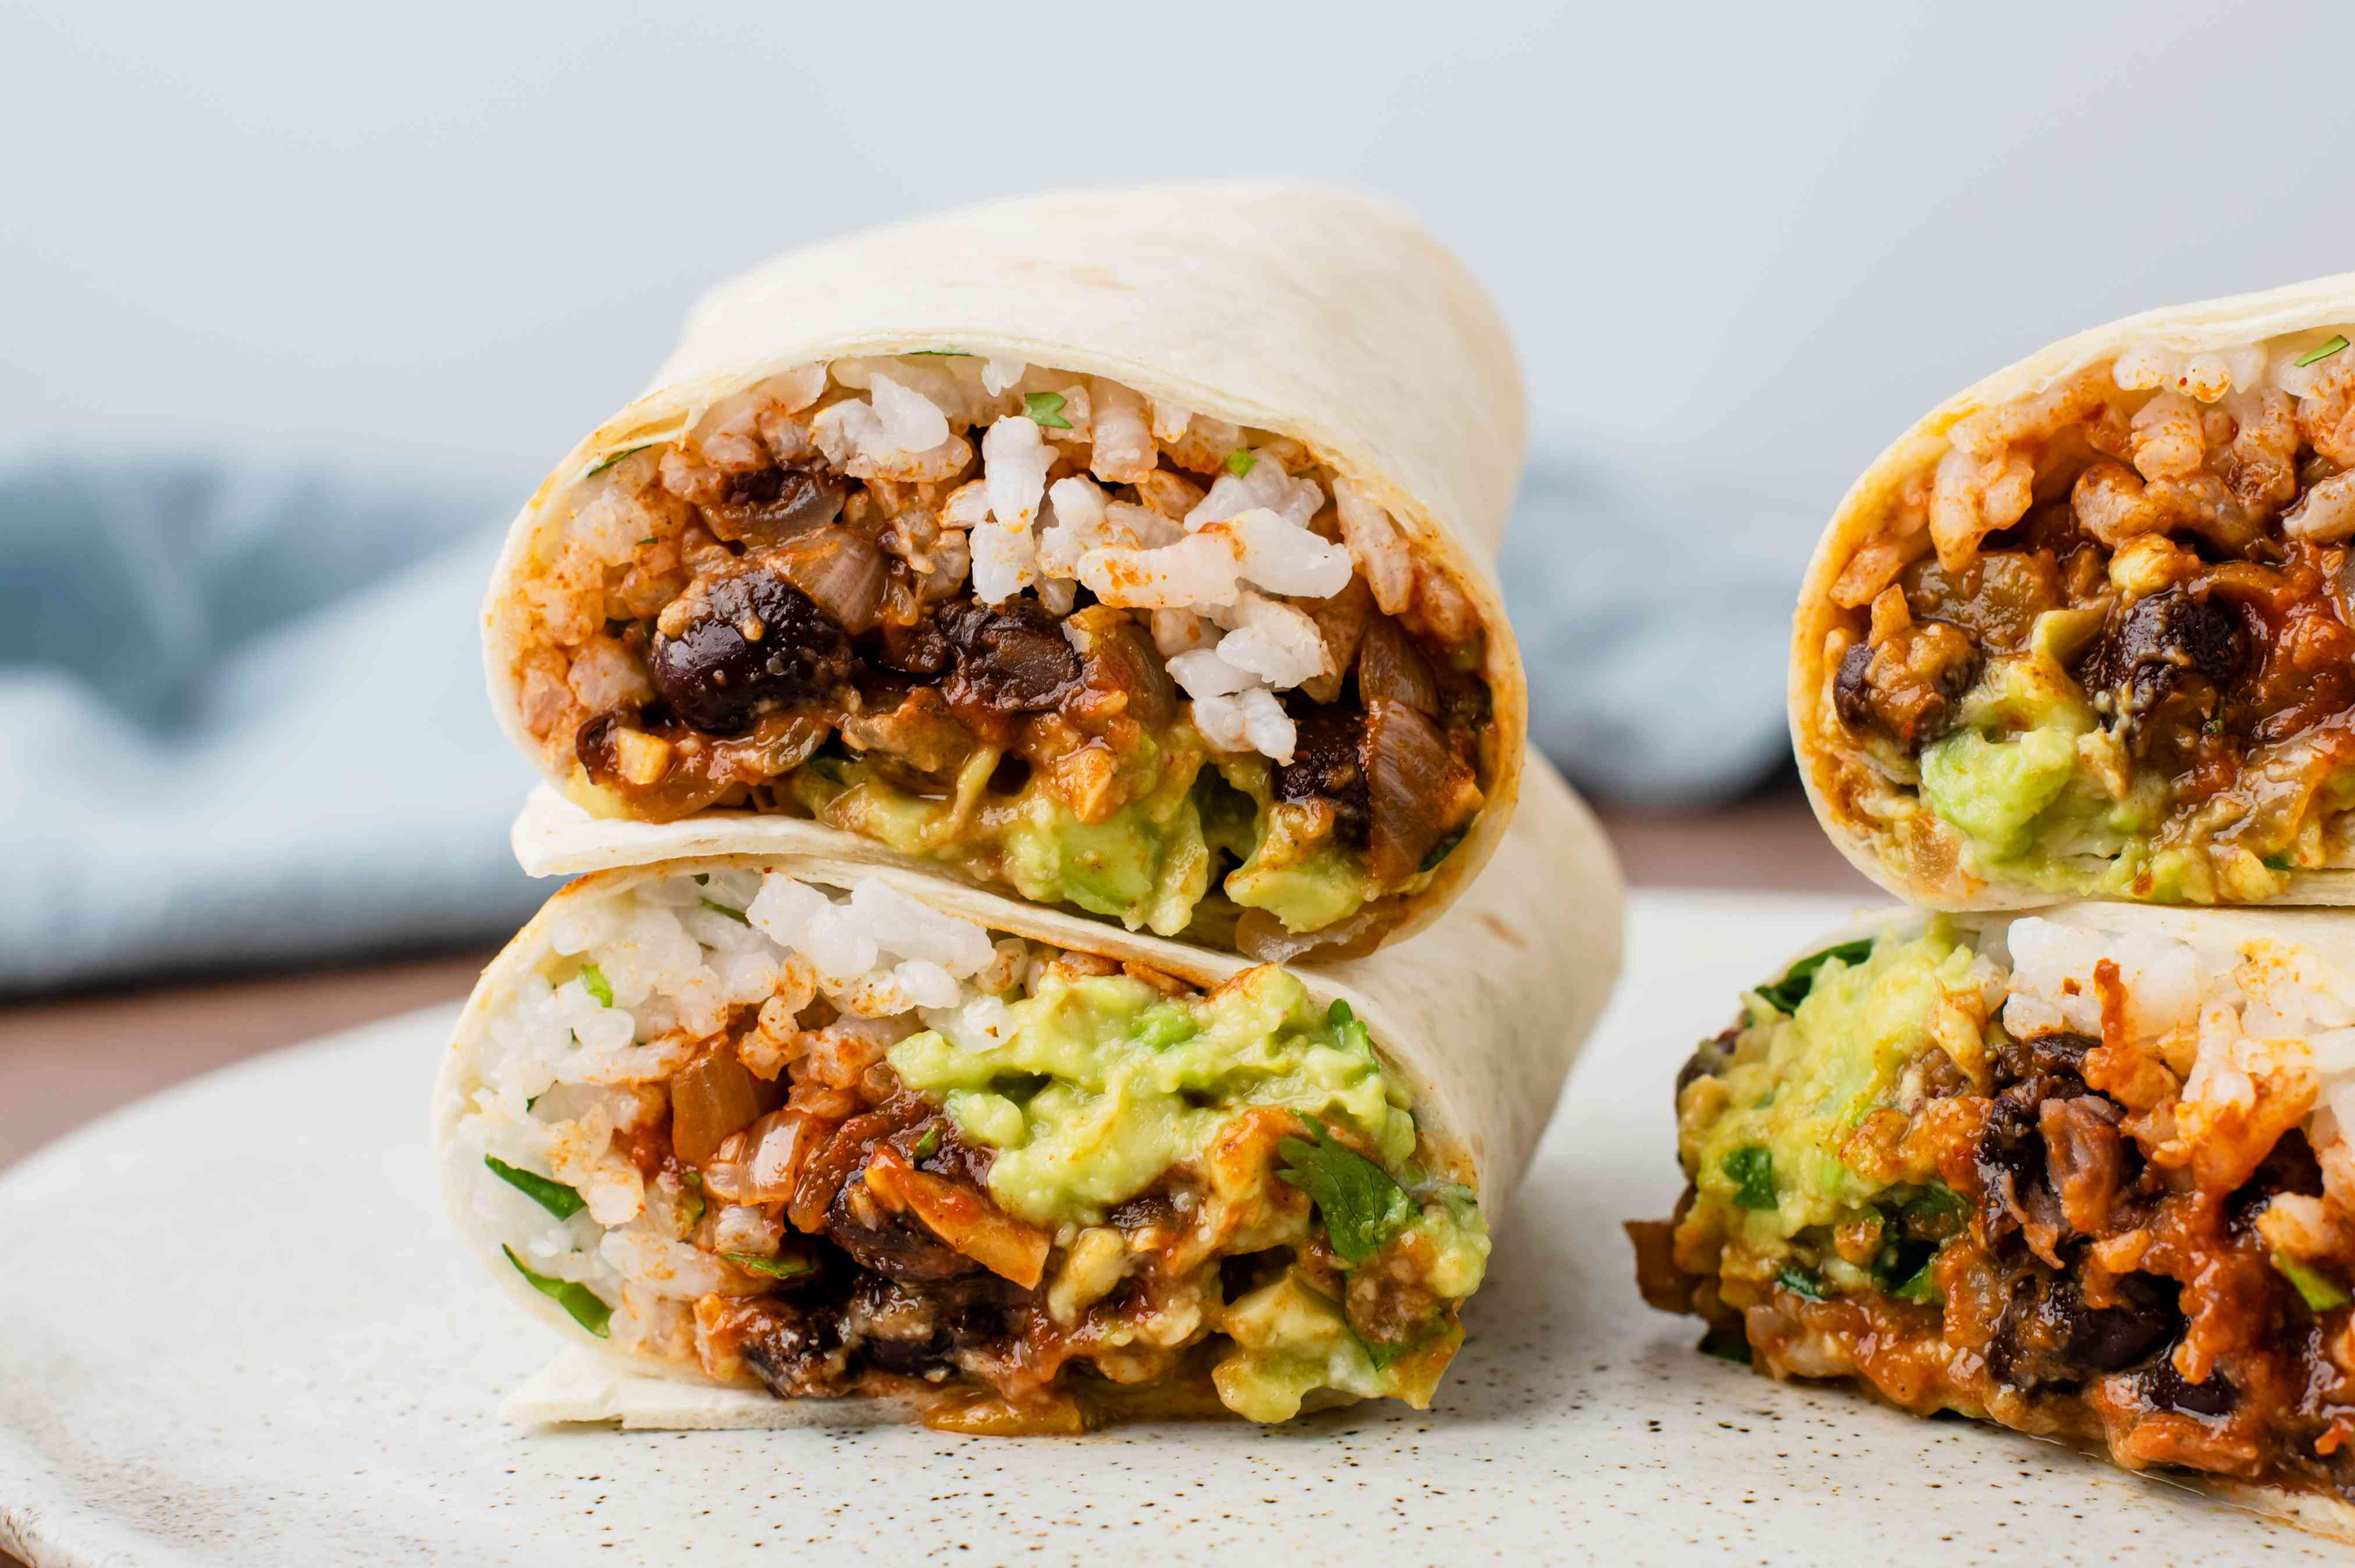 Vegetarian bean and rice burritos sliced in half and ready to serve